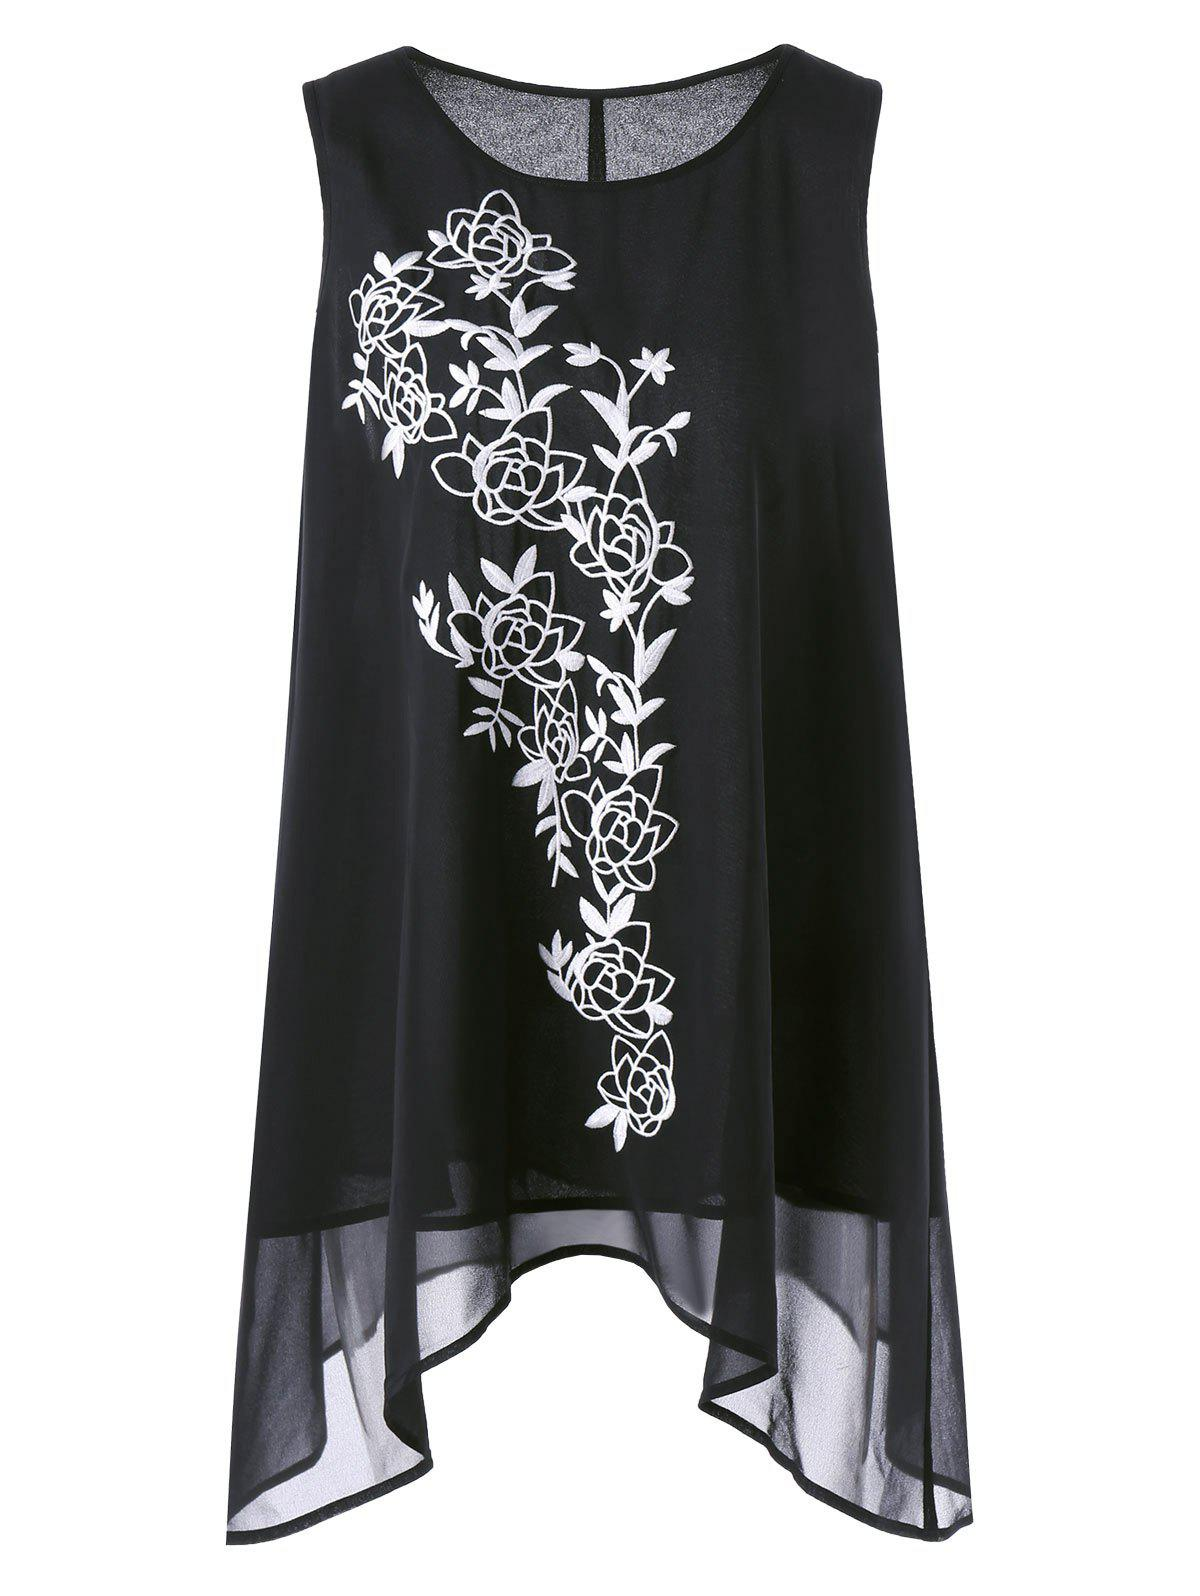 Asymmetric Plus Size Floral Embroidered TopWOMEN<br><br>Size: 4XL; Color: BLACK; Material: Cotton,Polyester; Shirt Length: Long; Sleeve Length: Sleeveless; Collar: Scoop Neck; Style: Casual; Season: Summer; Embellishment: Embroidery; Pattern Type: Floral; Weight: 0.2500kg; Package Contents: 1 x Top;